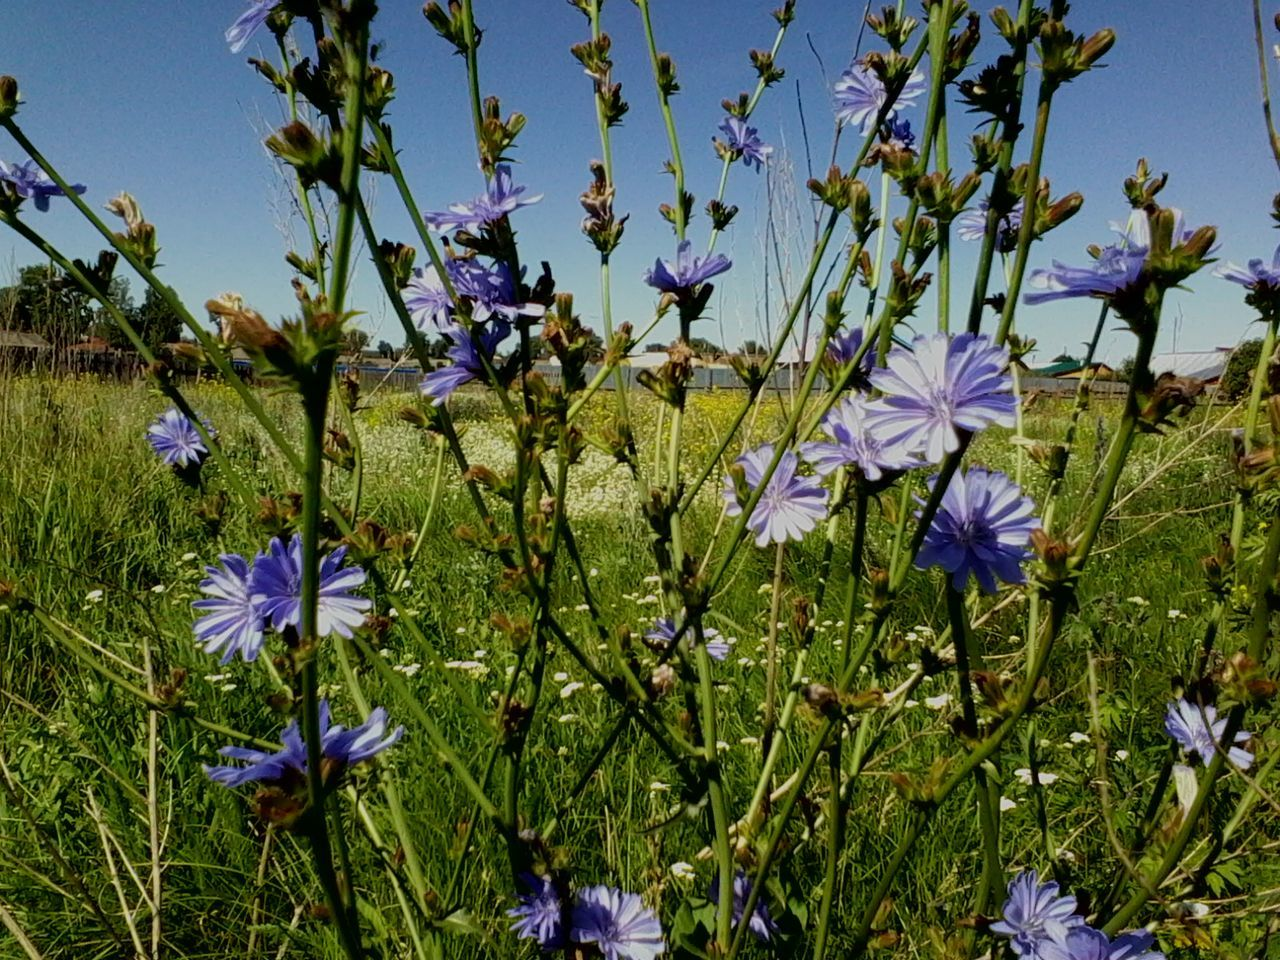 Chicory 🌾☔beautiful flower Flower Fragility Freshness Growth Beauty In Nature Nature Blue Purple Sunlight Plant Field Outdoors Day Close-up Flower Head Sky Russia EyeEmNewHere Мордовия Пурдошки Темников Chicory цикорий Endive Mordovia